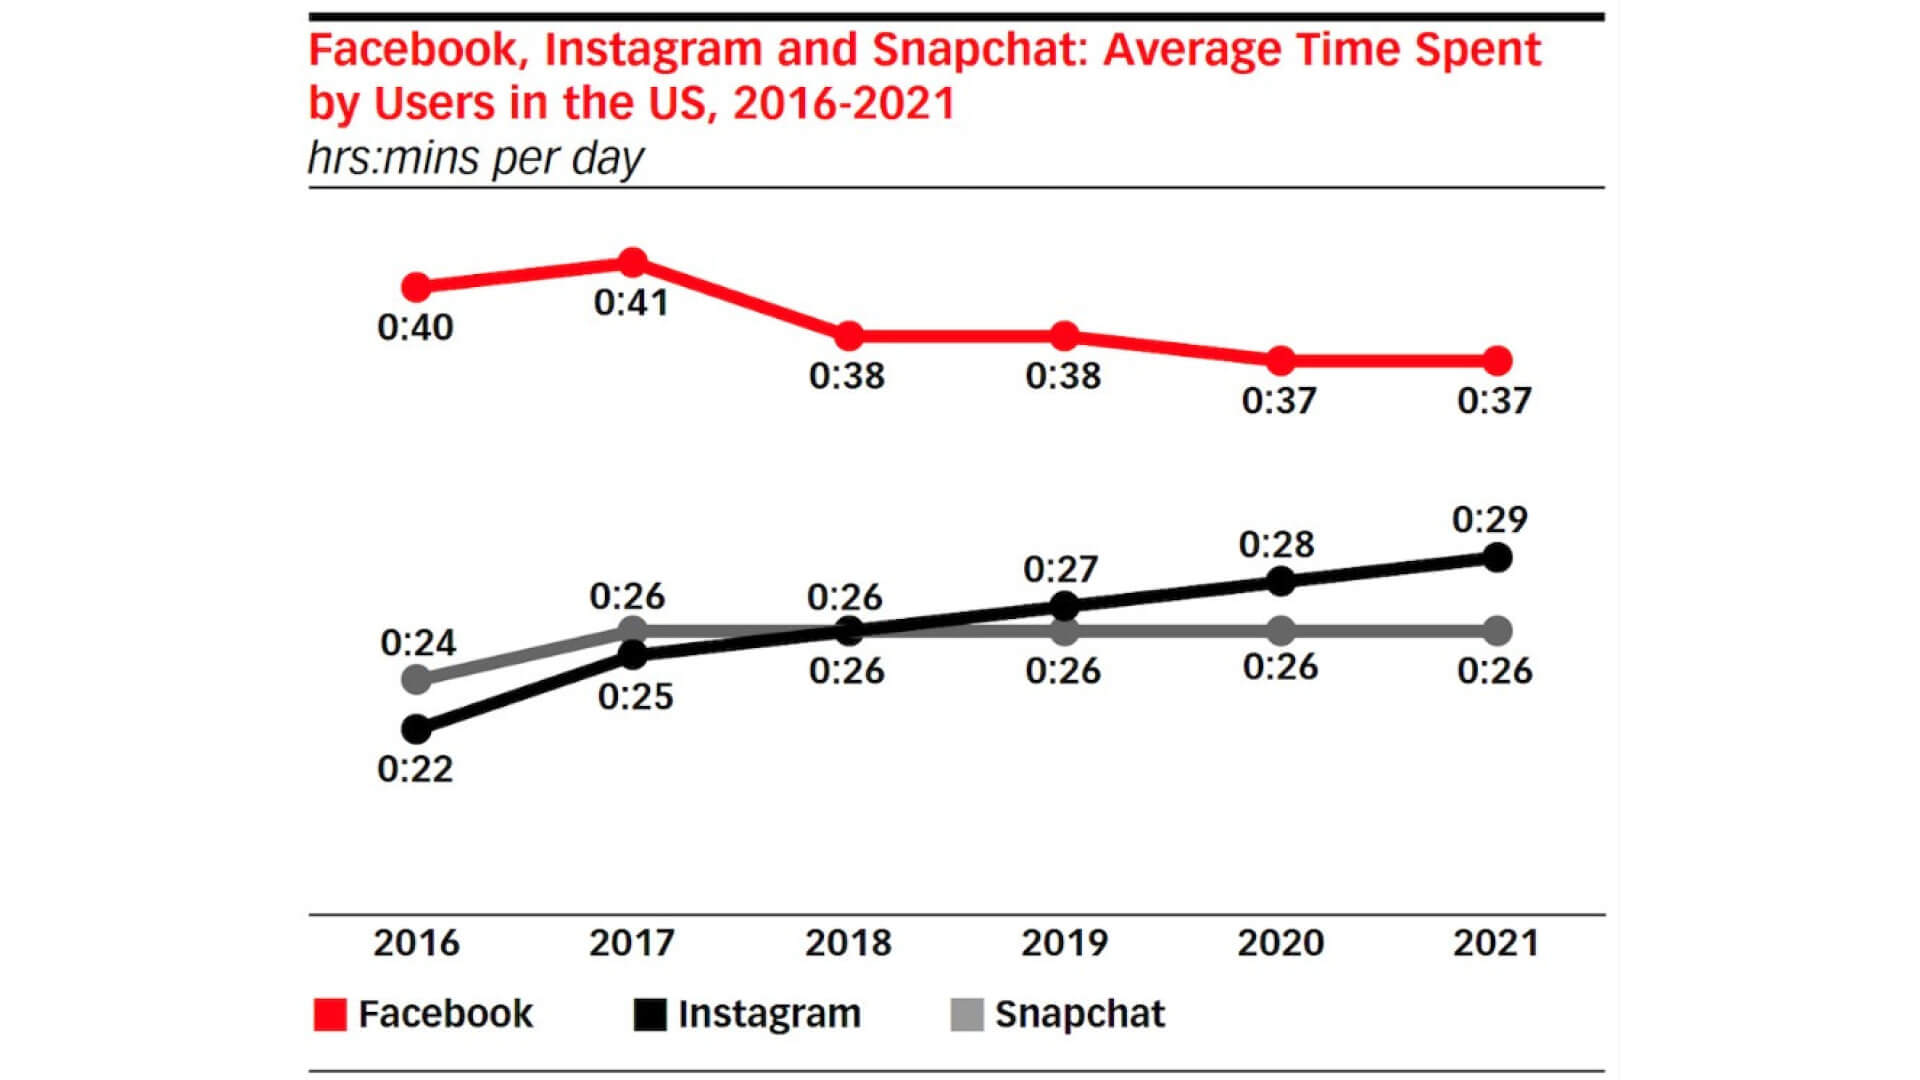 Time spent on Facebook, Snapchat remains flat, but Instagram sees growth